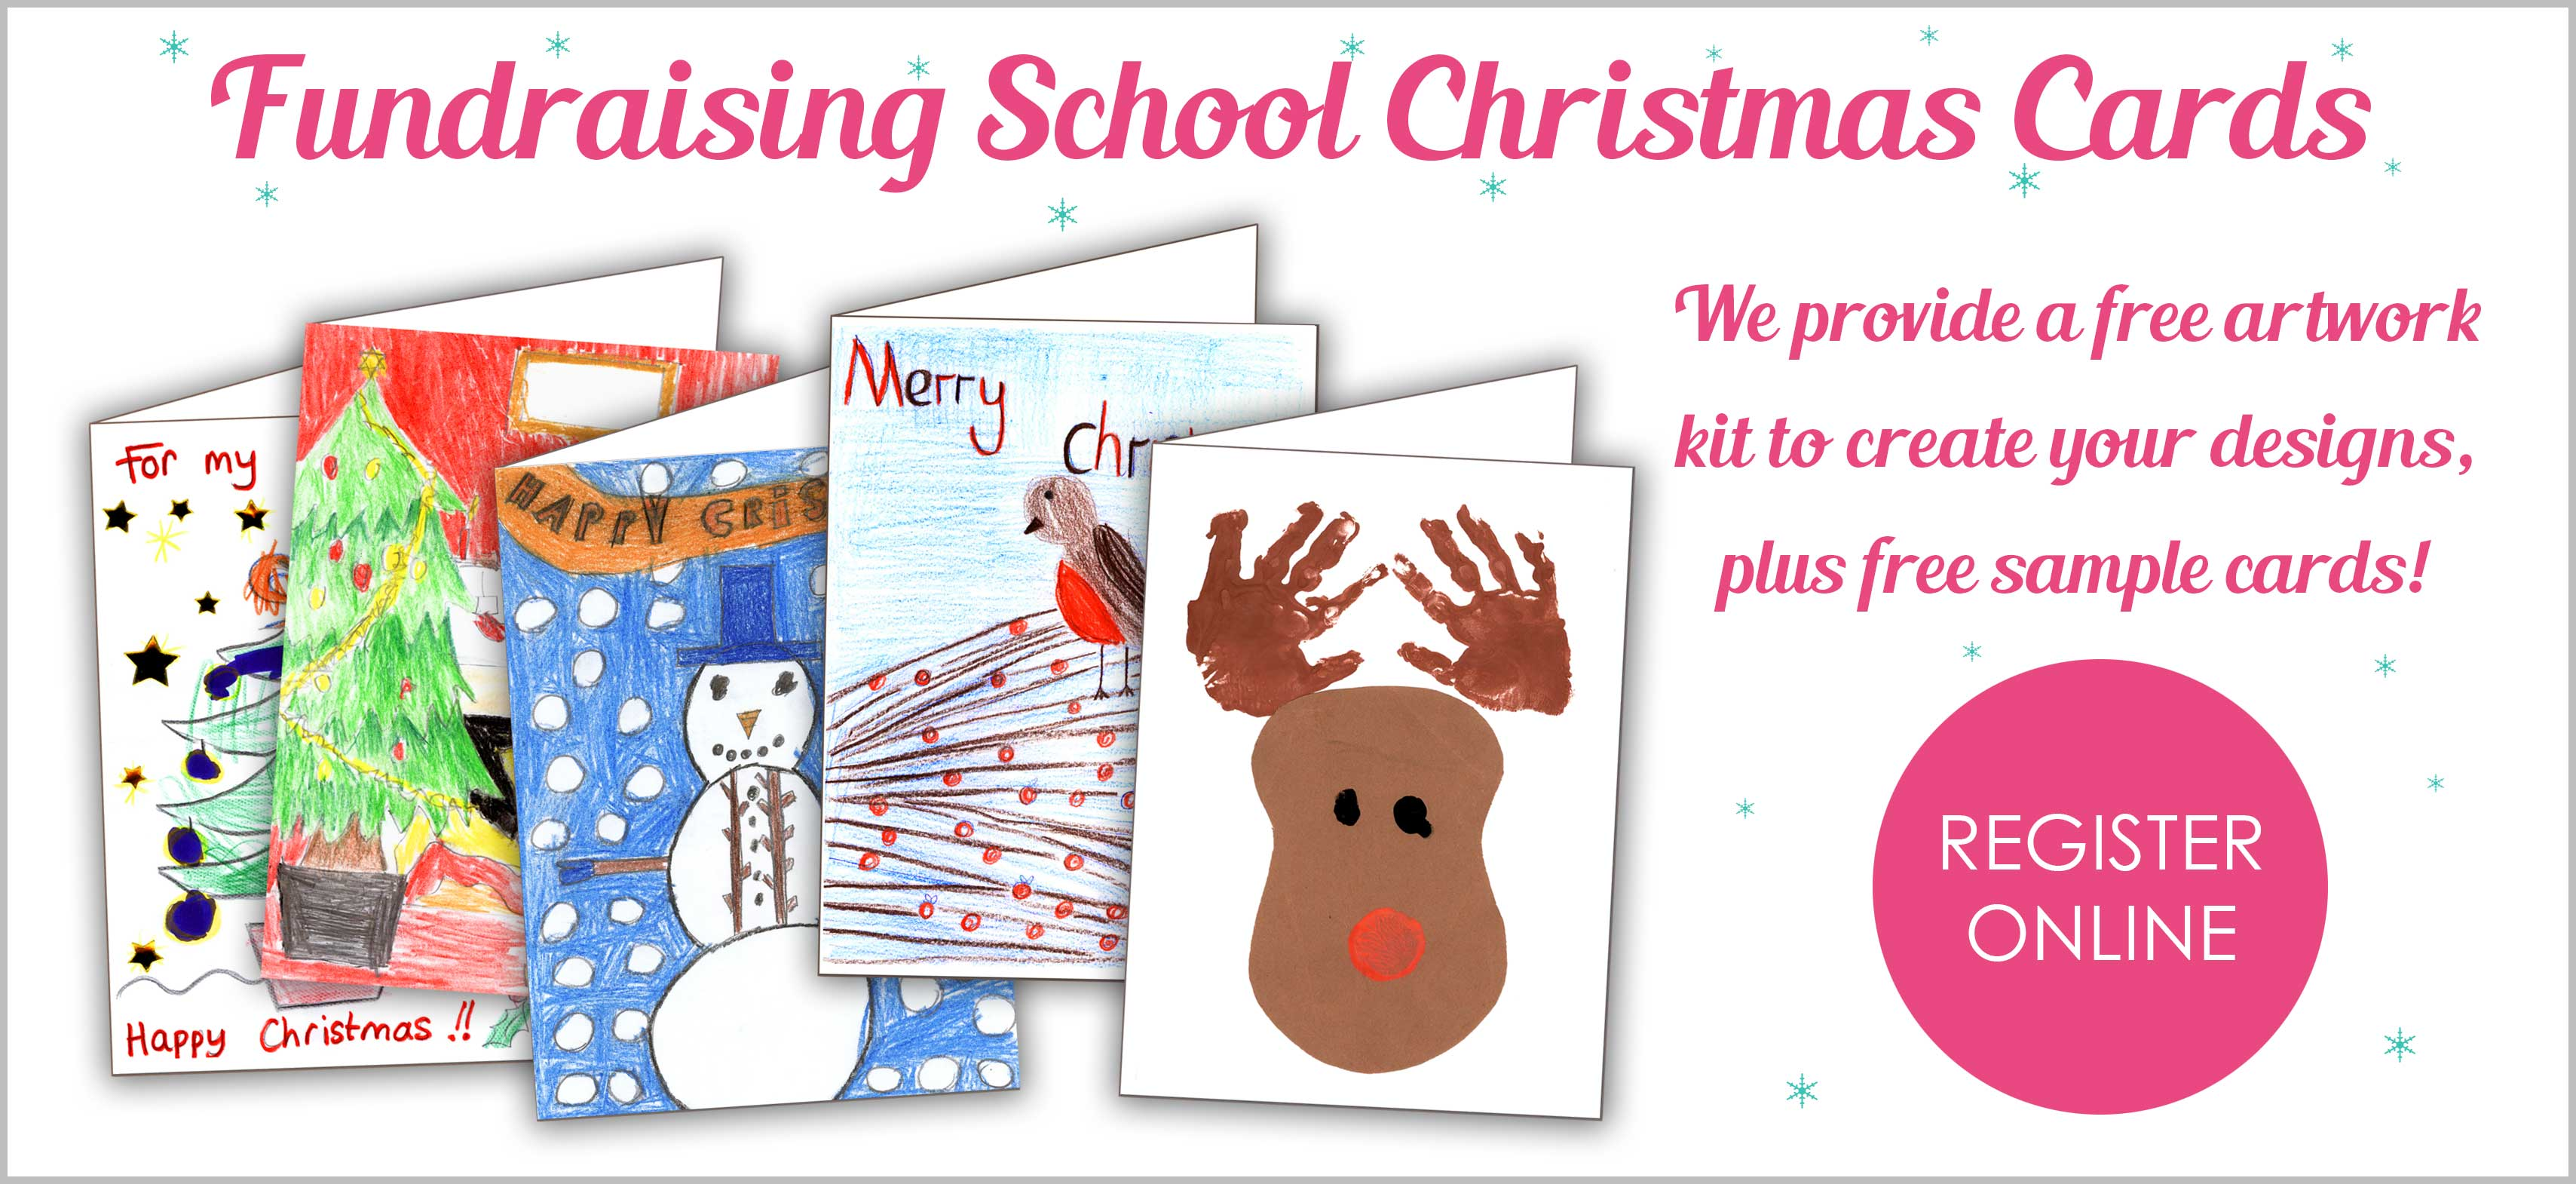 Fundraising Christmas Cards